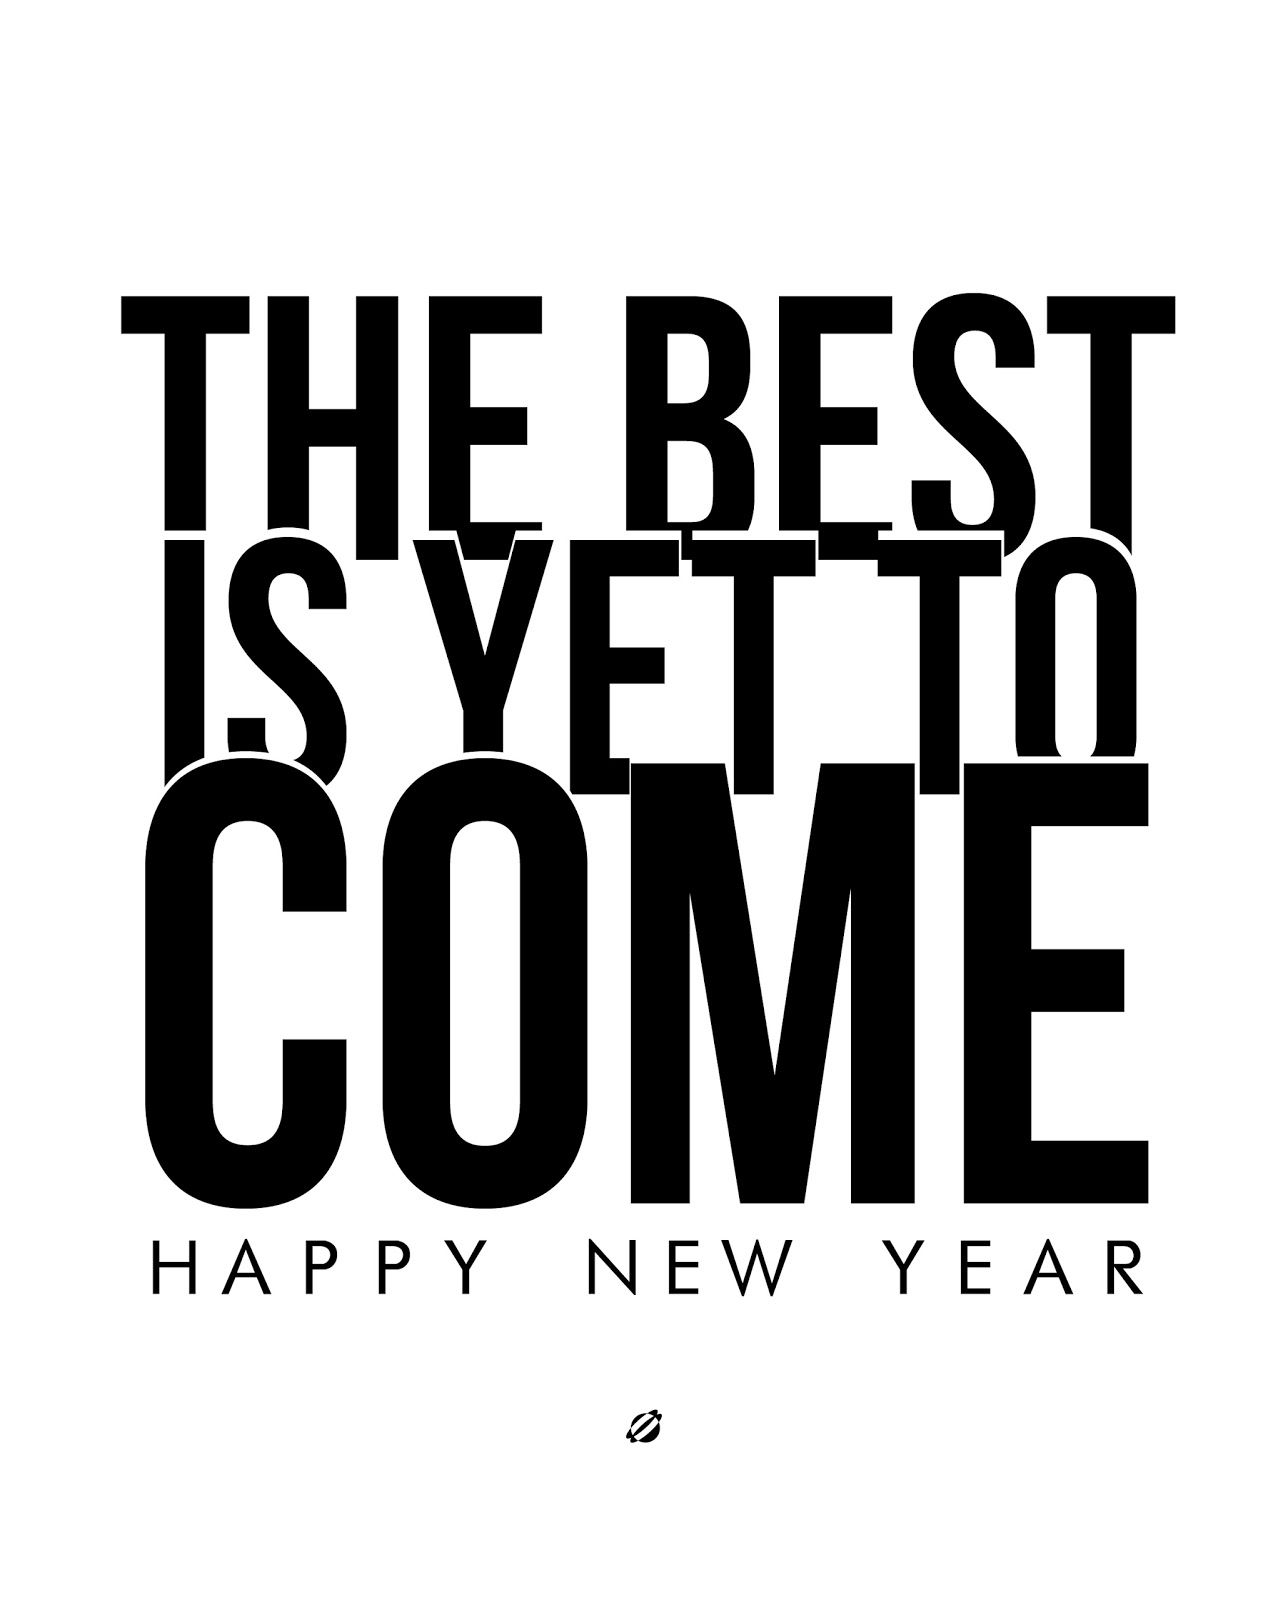 Make 2014 your best year ever! | Inspirational Fitness Quotes ...